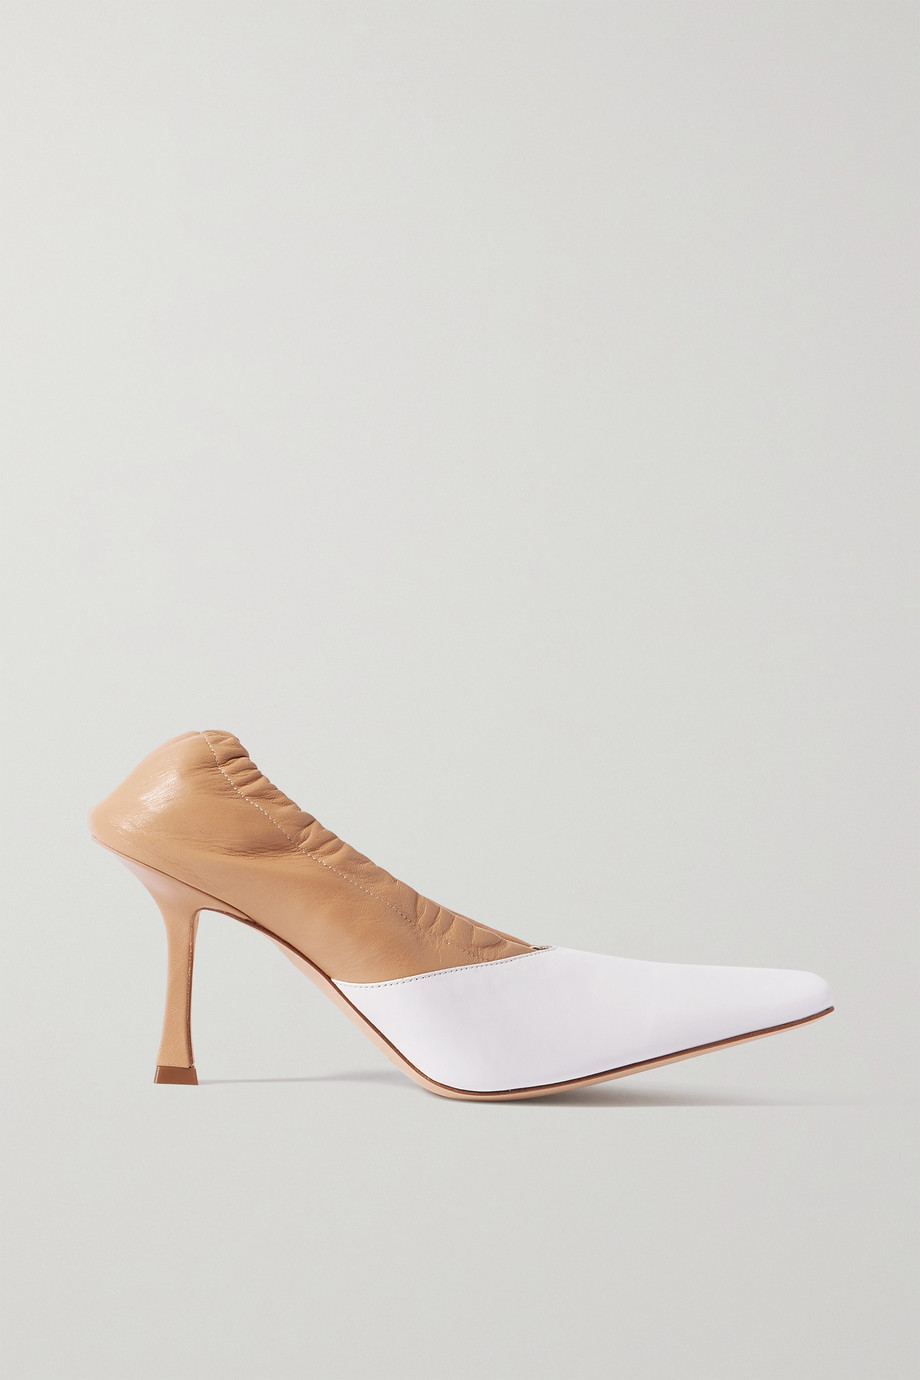 A.W.A.K.E. MODE Gertrud two-tone leather pumps